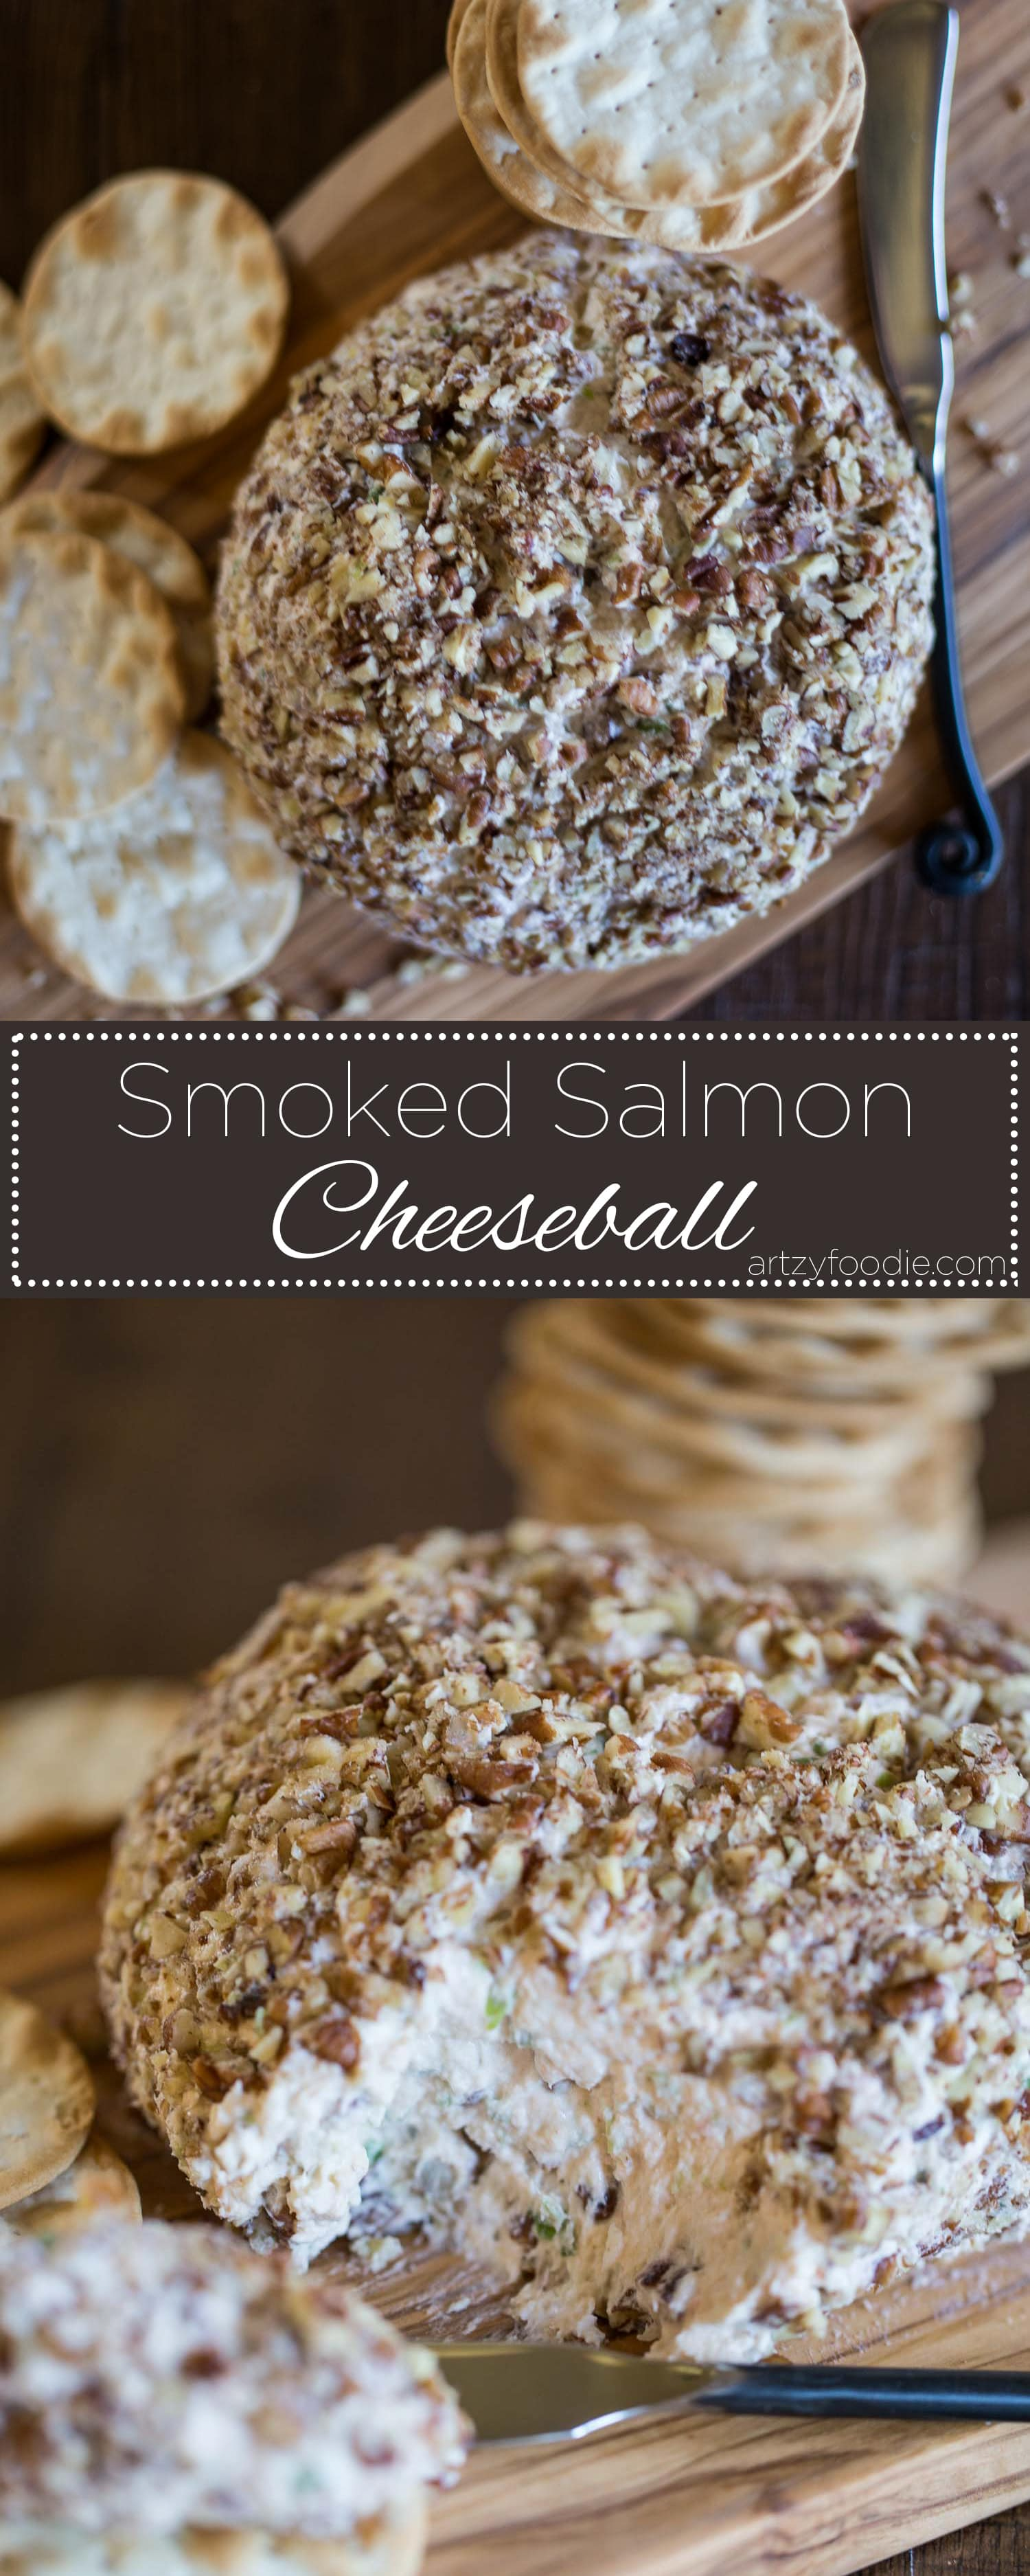 Smoked salmon cheeseball is one of my favorite appetizers for the holiday season! |artzyfoodie.com|